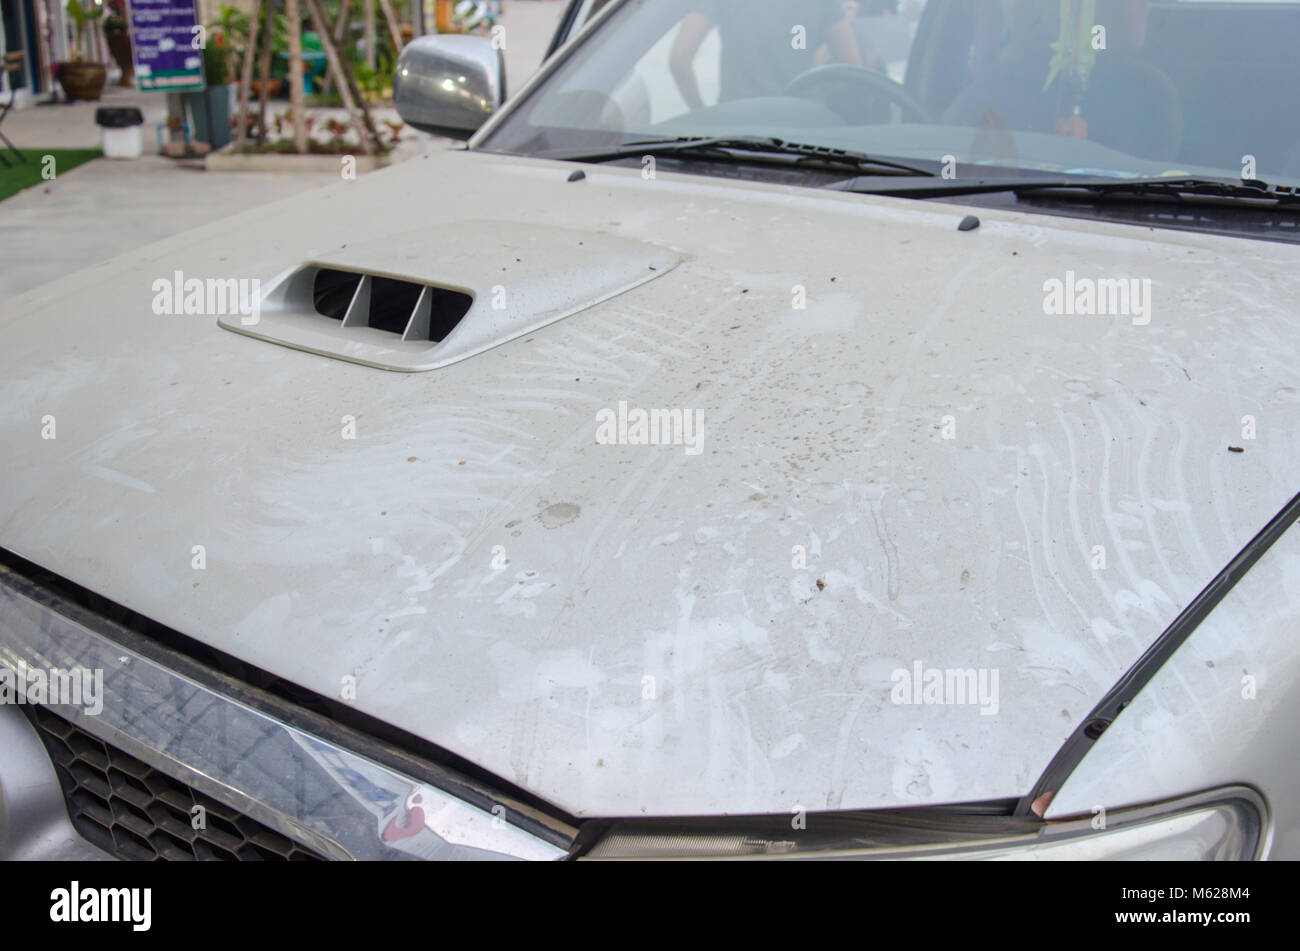 Dirt on the front hood of the car. - Stock Image